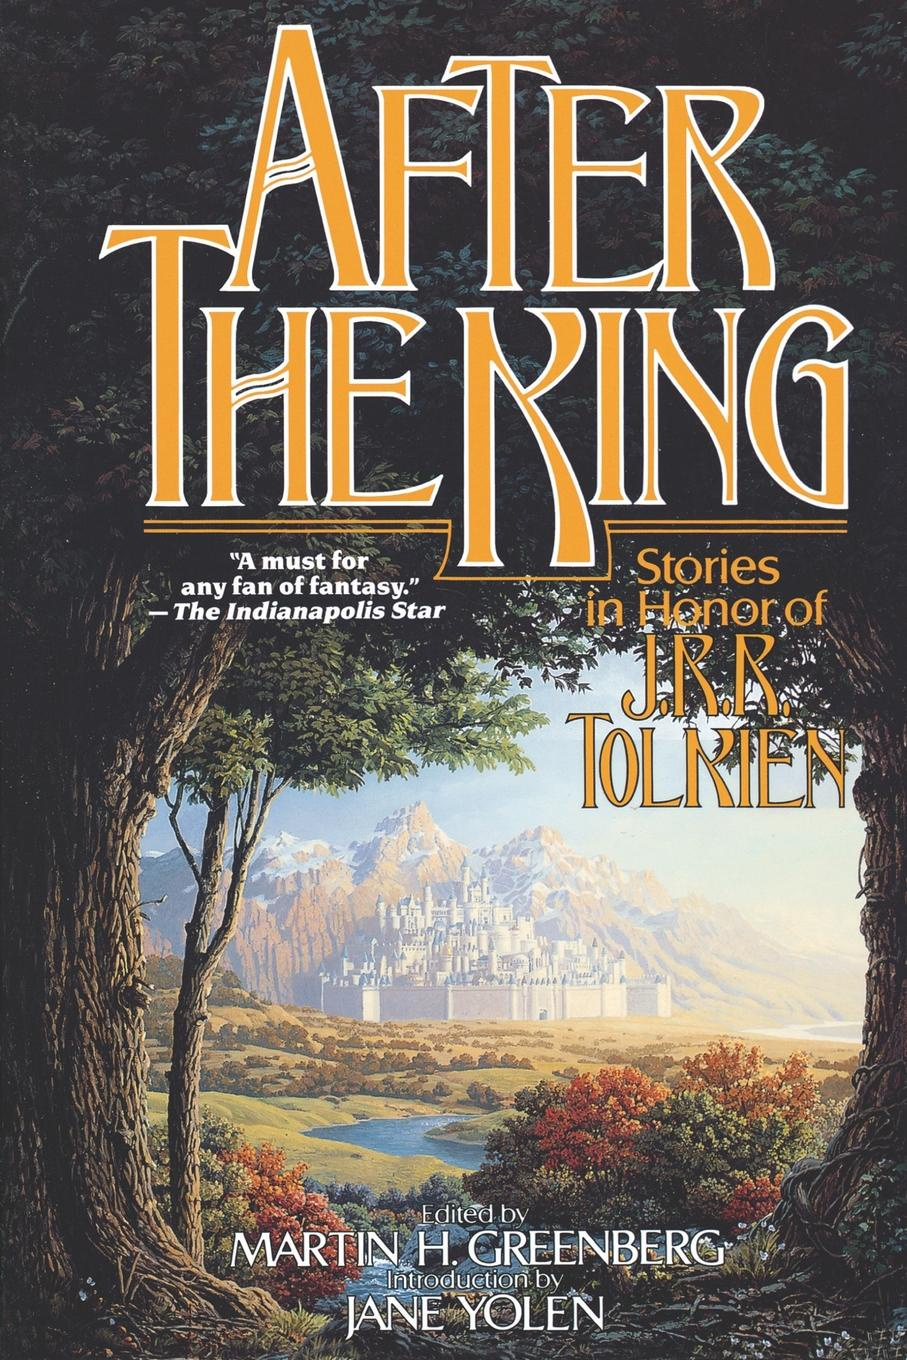 цена на After the King. Stories in Honor of J.R.R. Tolkien